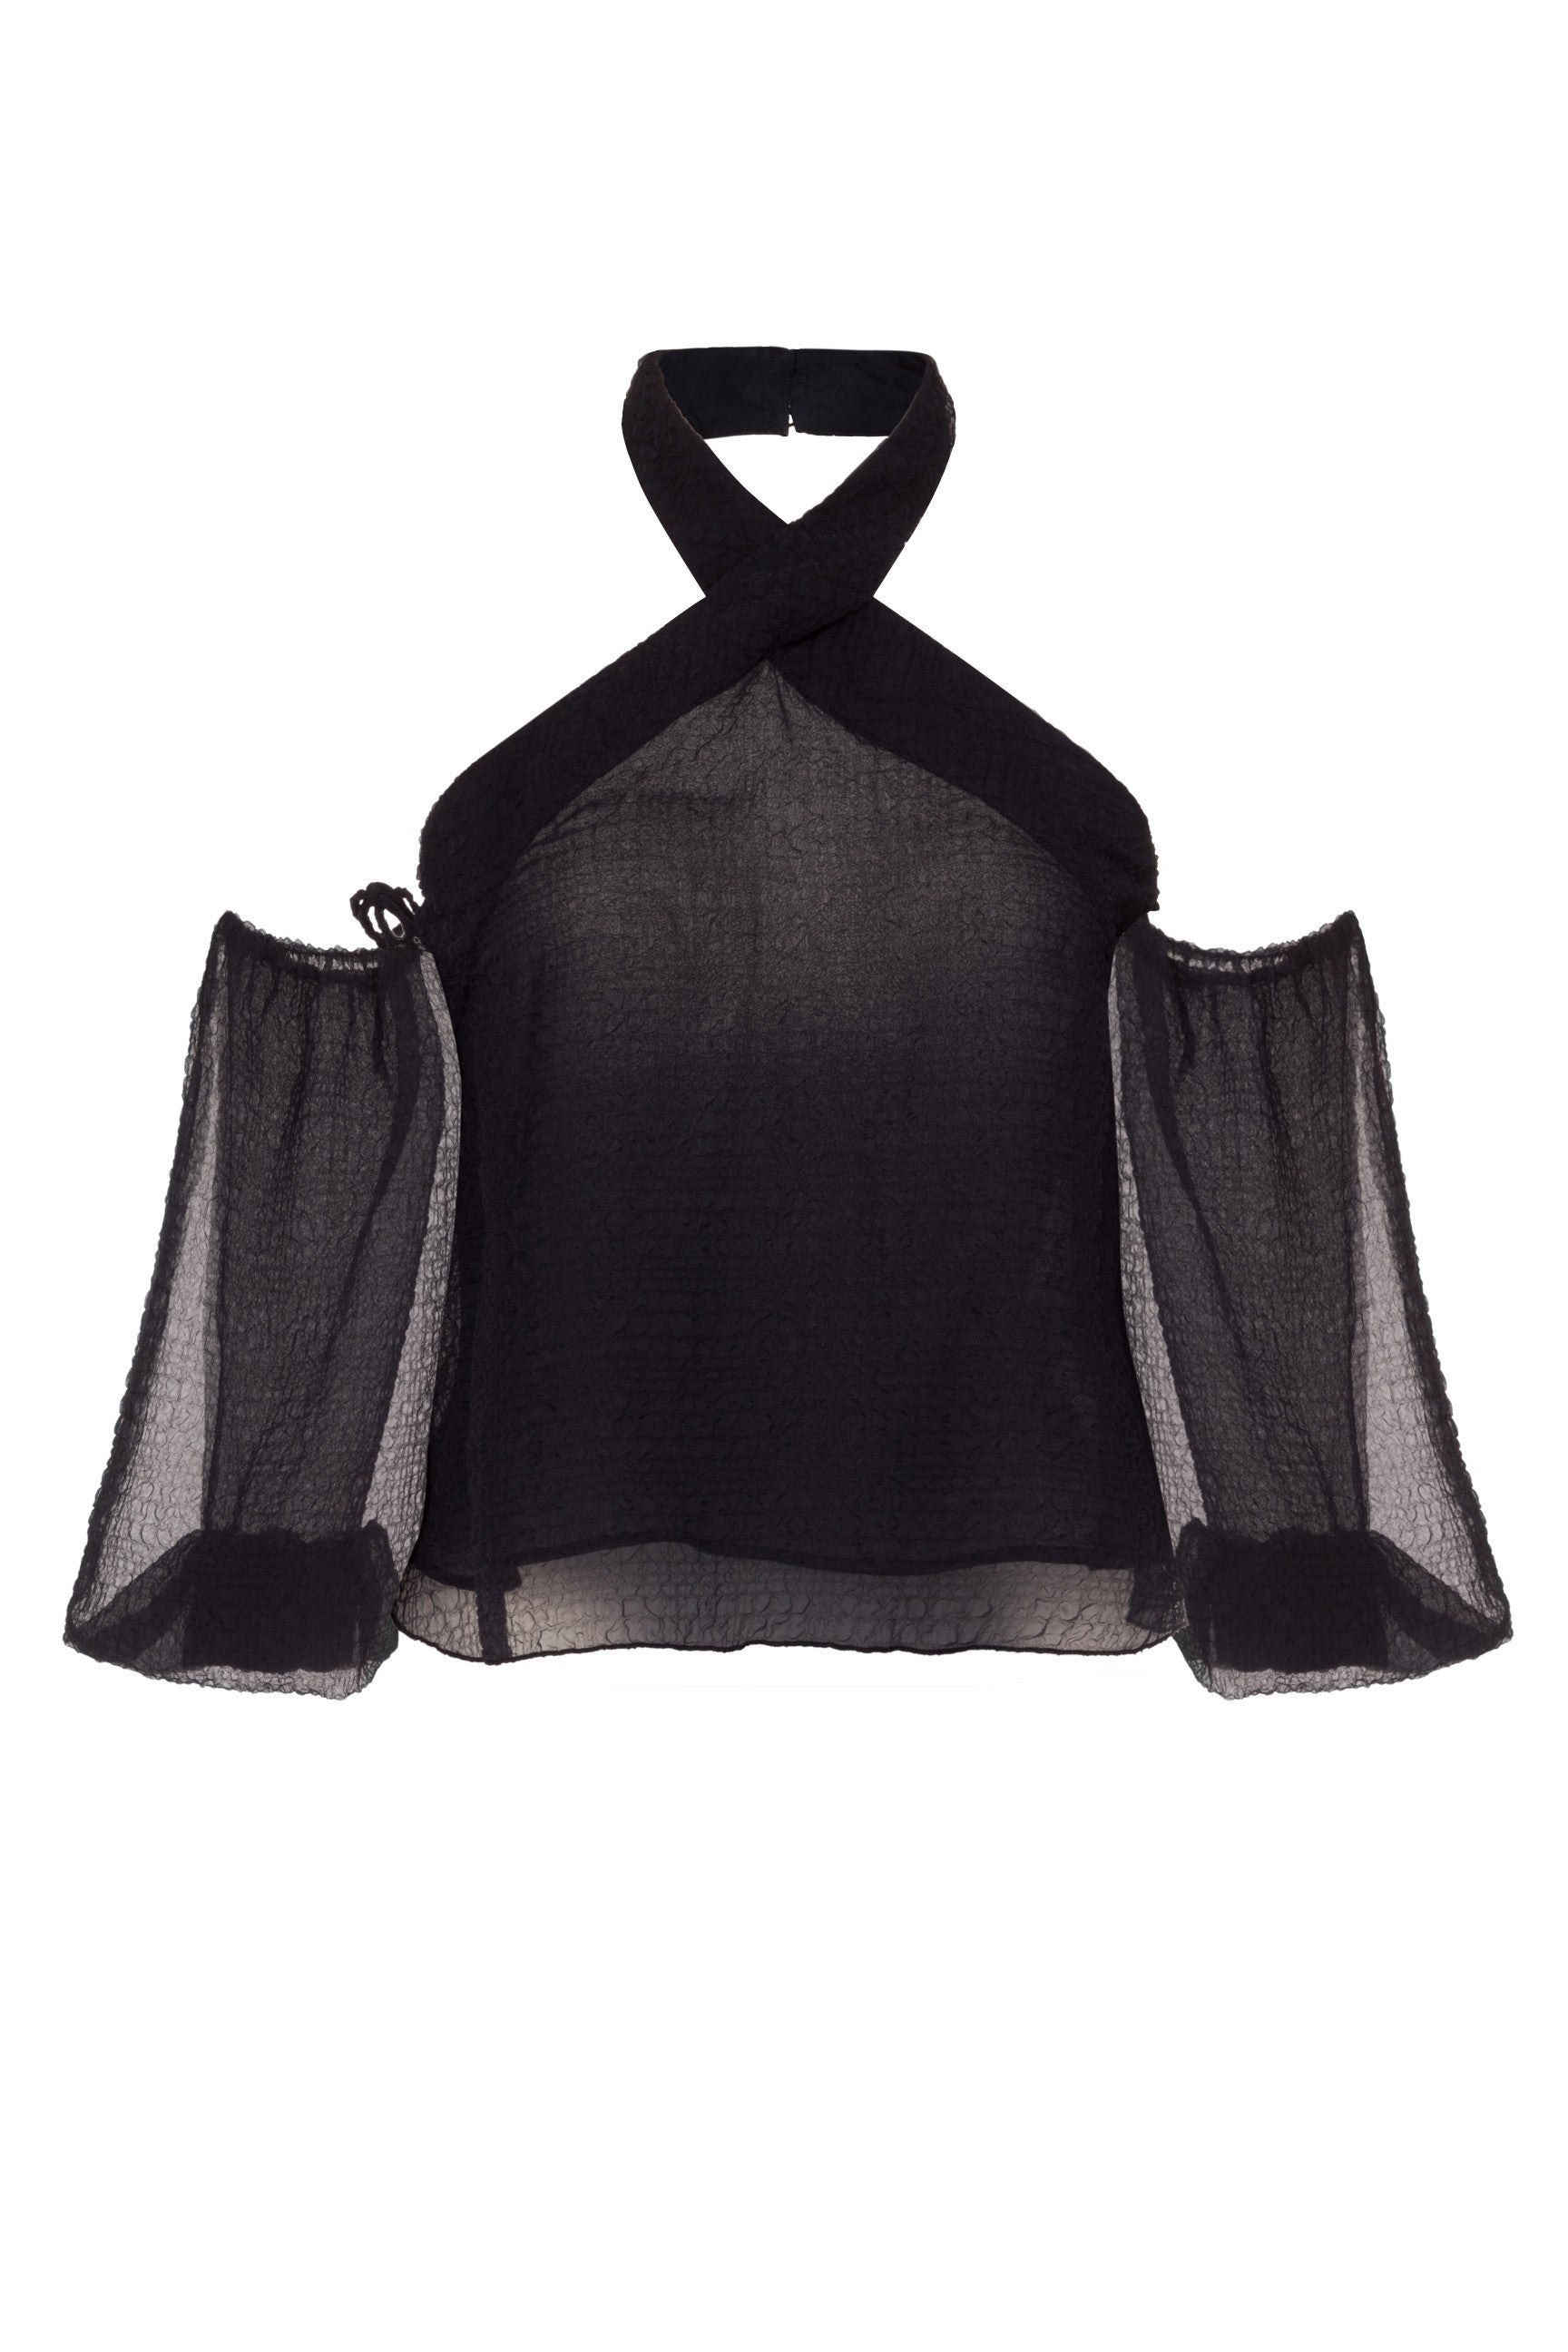 Black Halter Neck Jelly Top